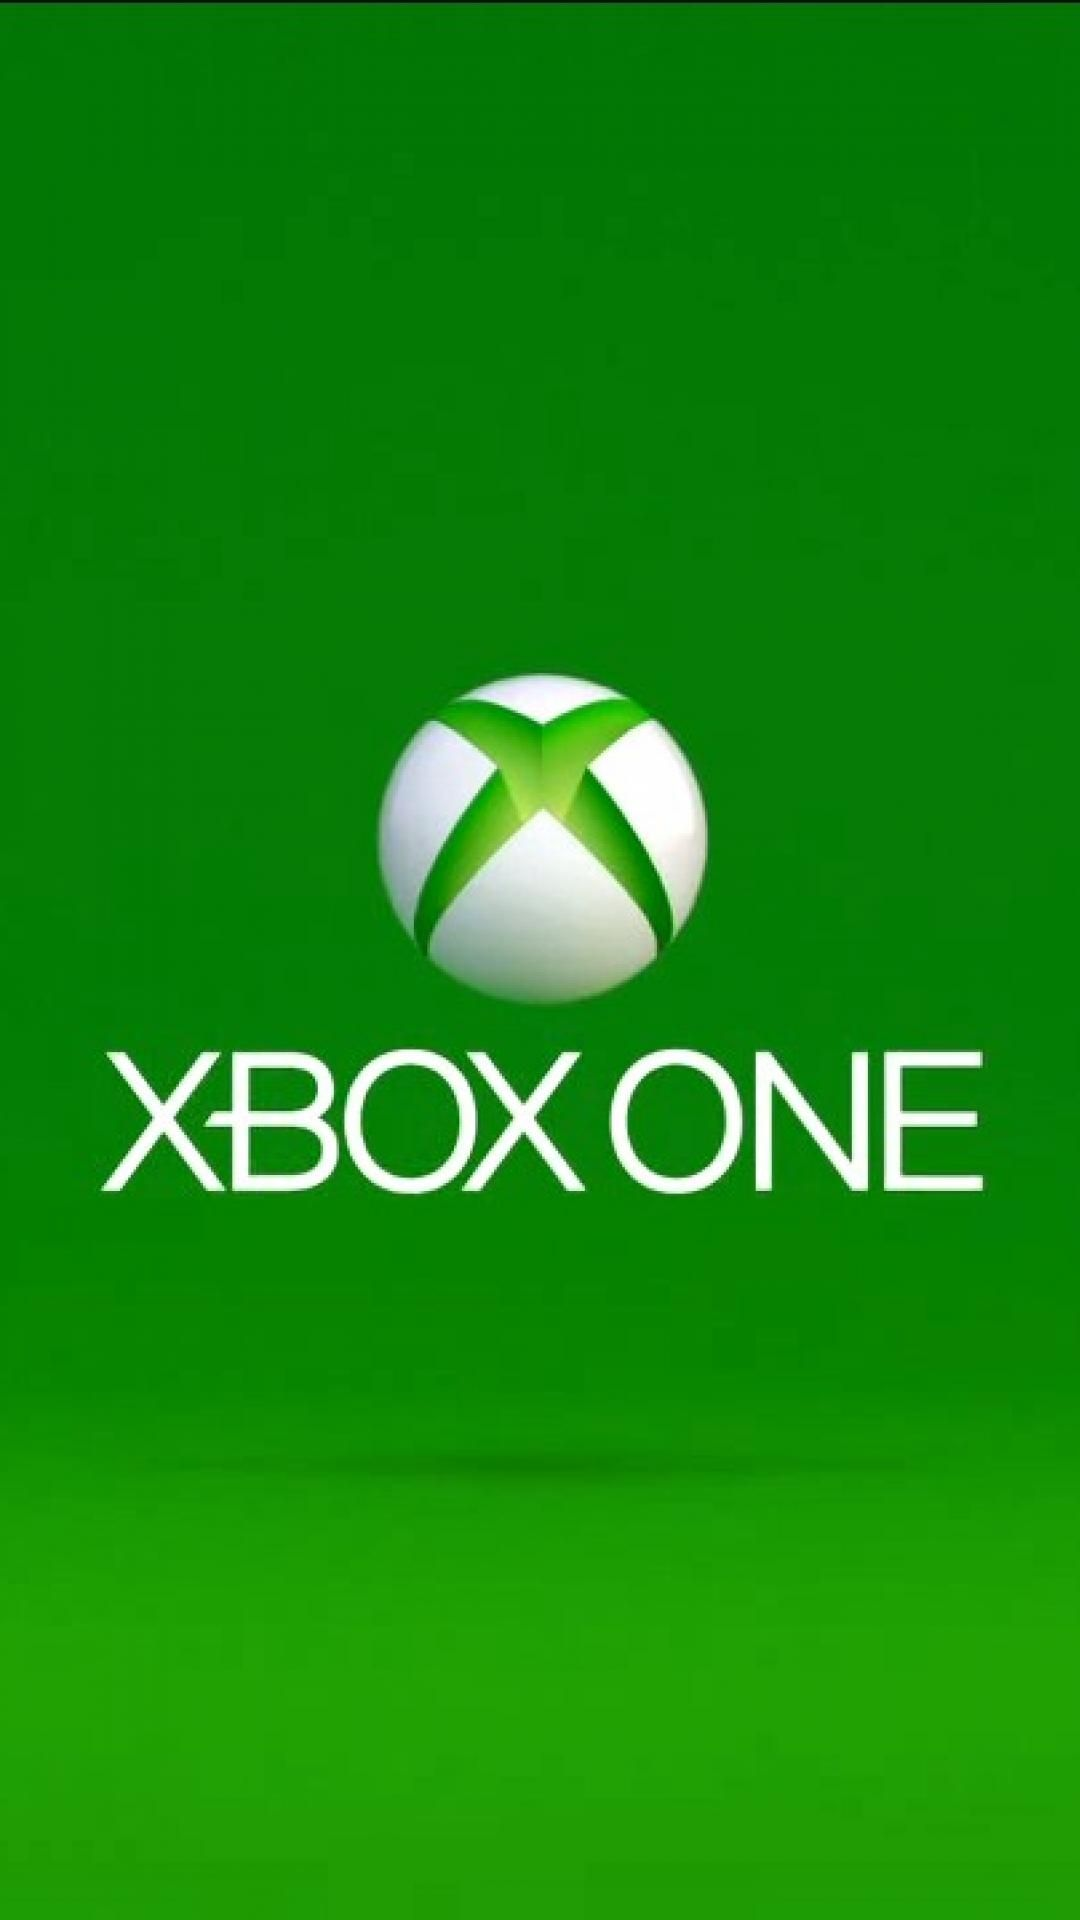 Xbox Mobile Wallpapers On Wallpaperdog